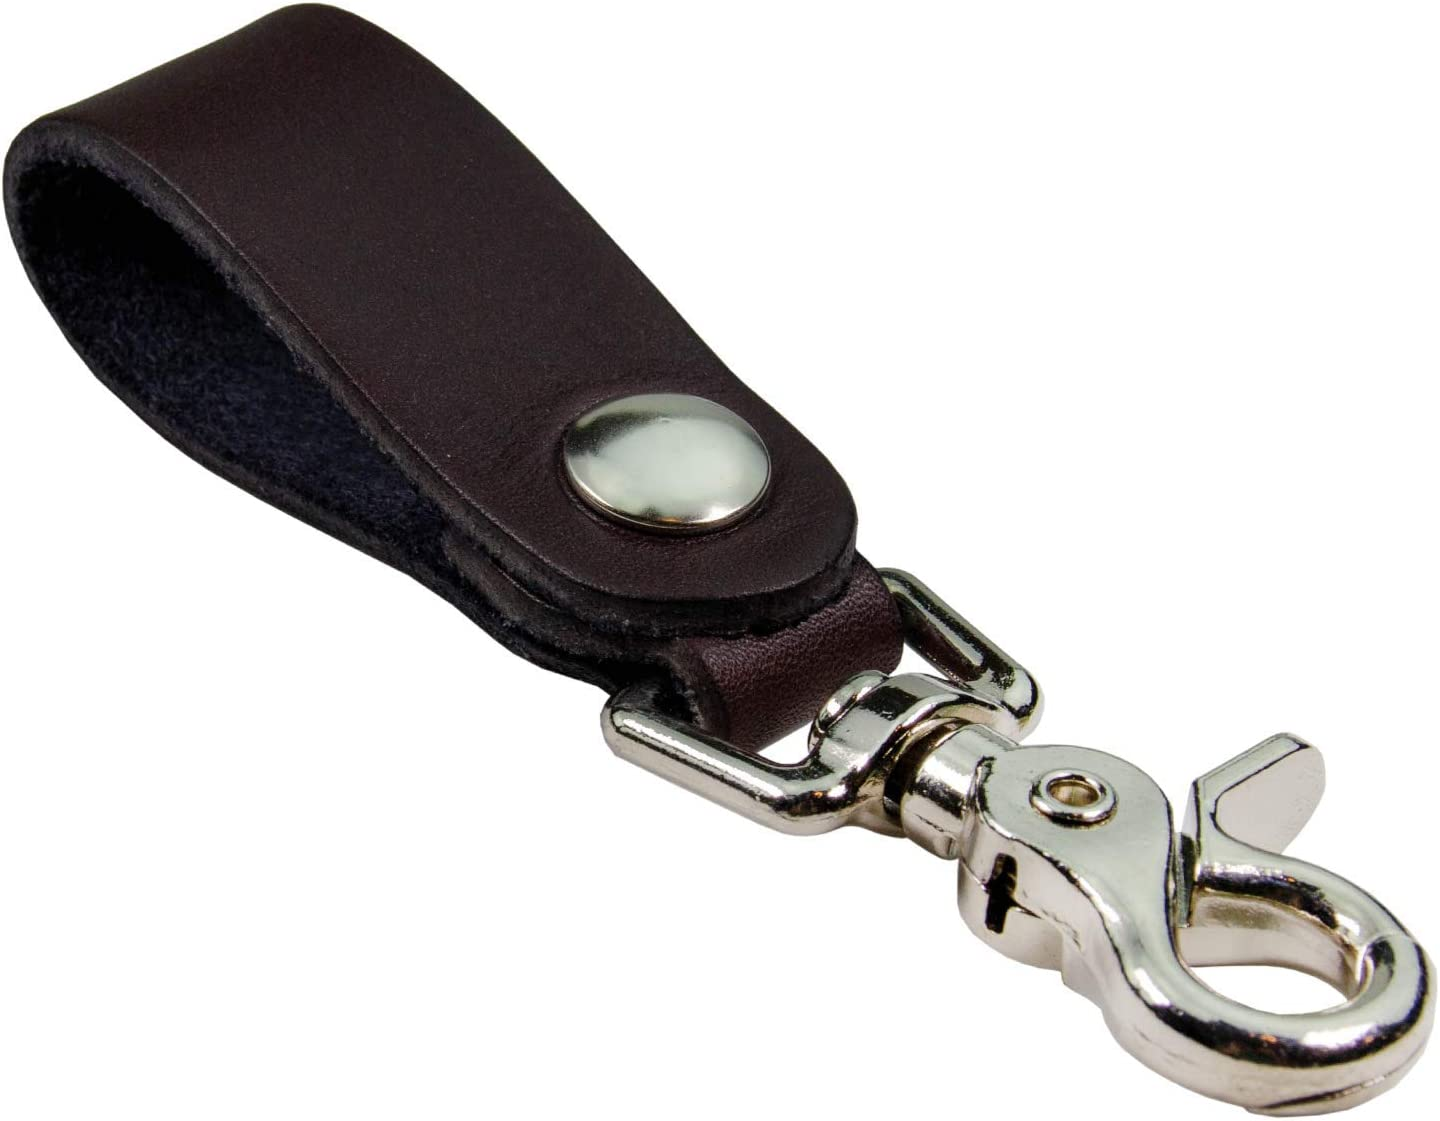 Relentless Tactical | The Ultimate Leather Keychain | Made in USA | Hand Made of Full Grain Leather | Luxury Valet Keychain | Quick Detach | Leather Belt Keeper | Key Ring Organizer